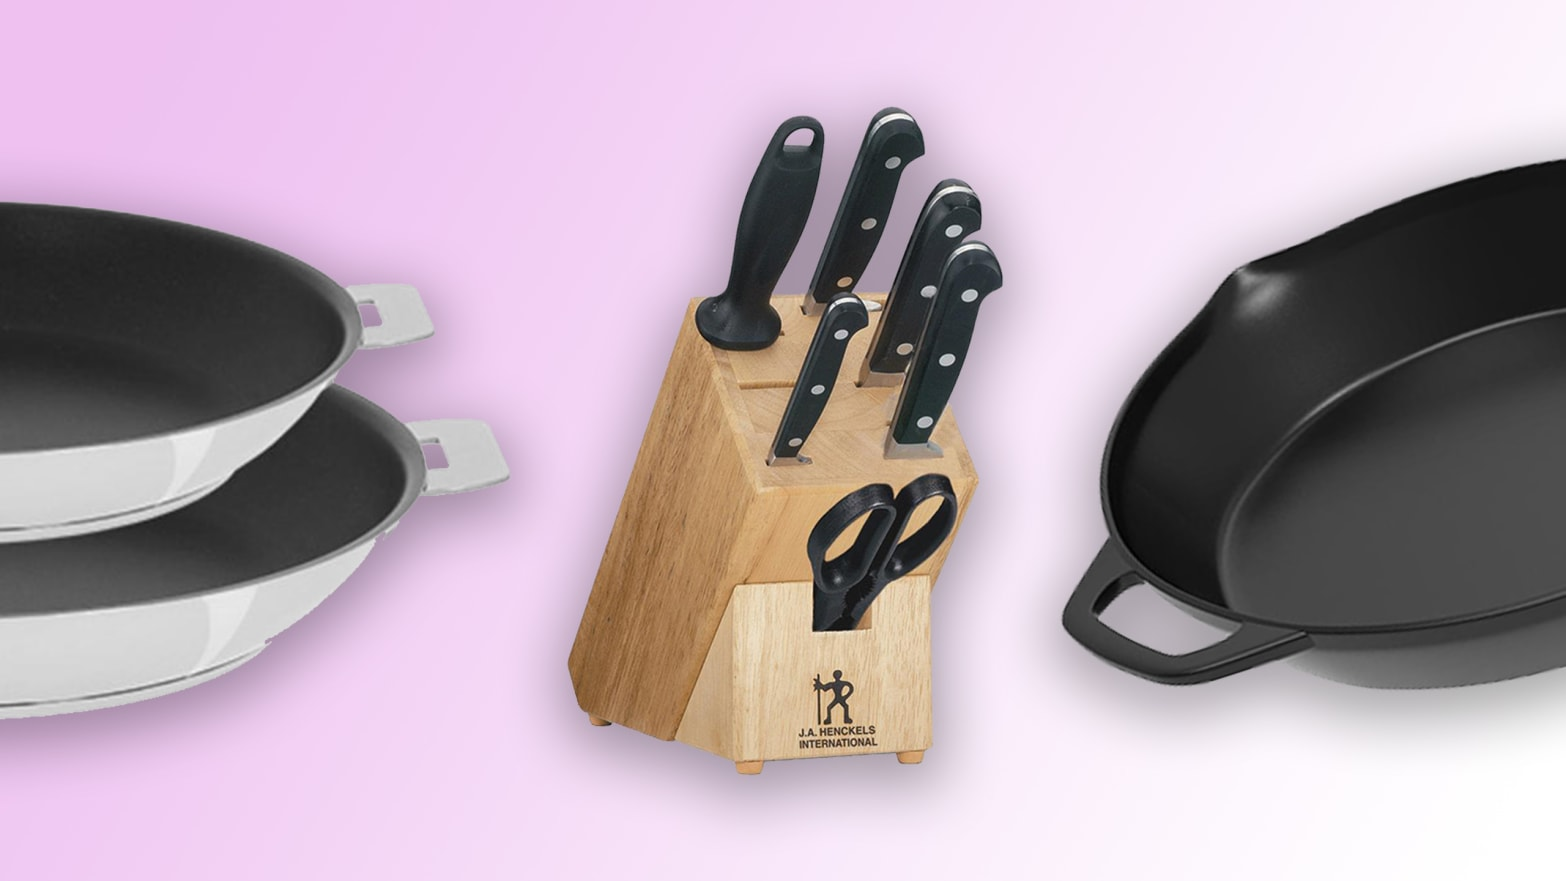 Home Depot Sale: KitchenAid, J.A. Henckels, and Cristel Cookware and Cutlery Up to 40% Off